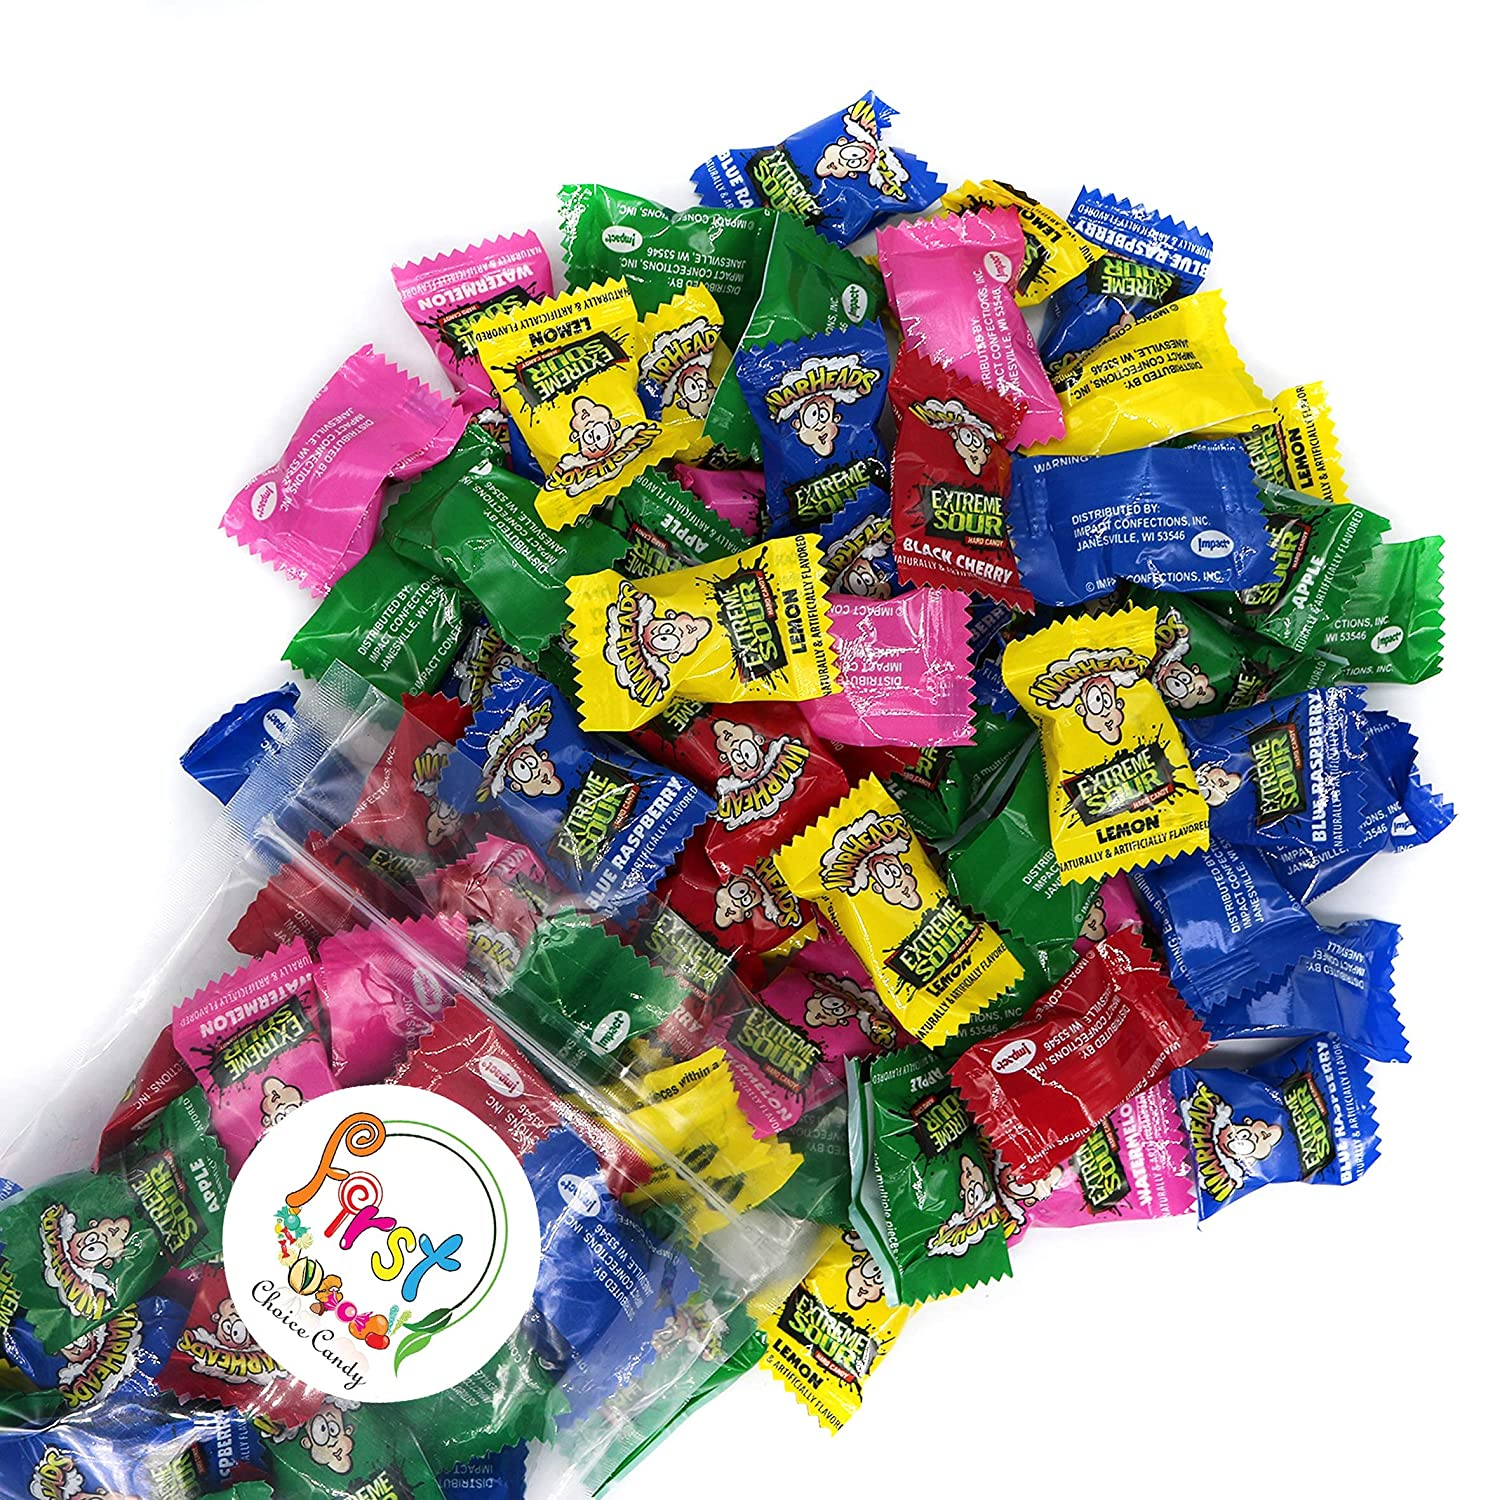 Warheads Extreme Sour Hard Candy Assorted Flavors (Regular Mix, 2 Pound)